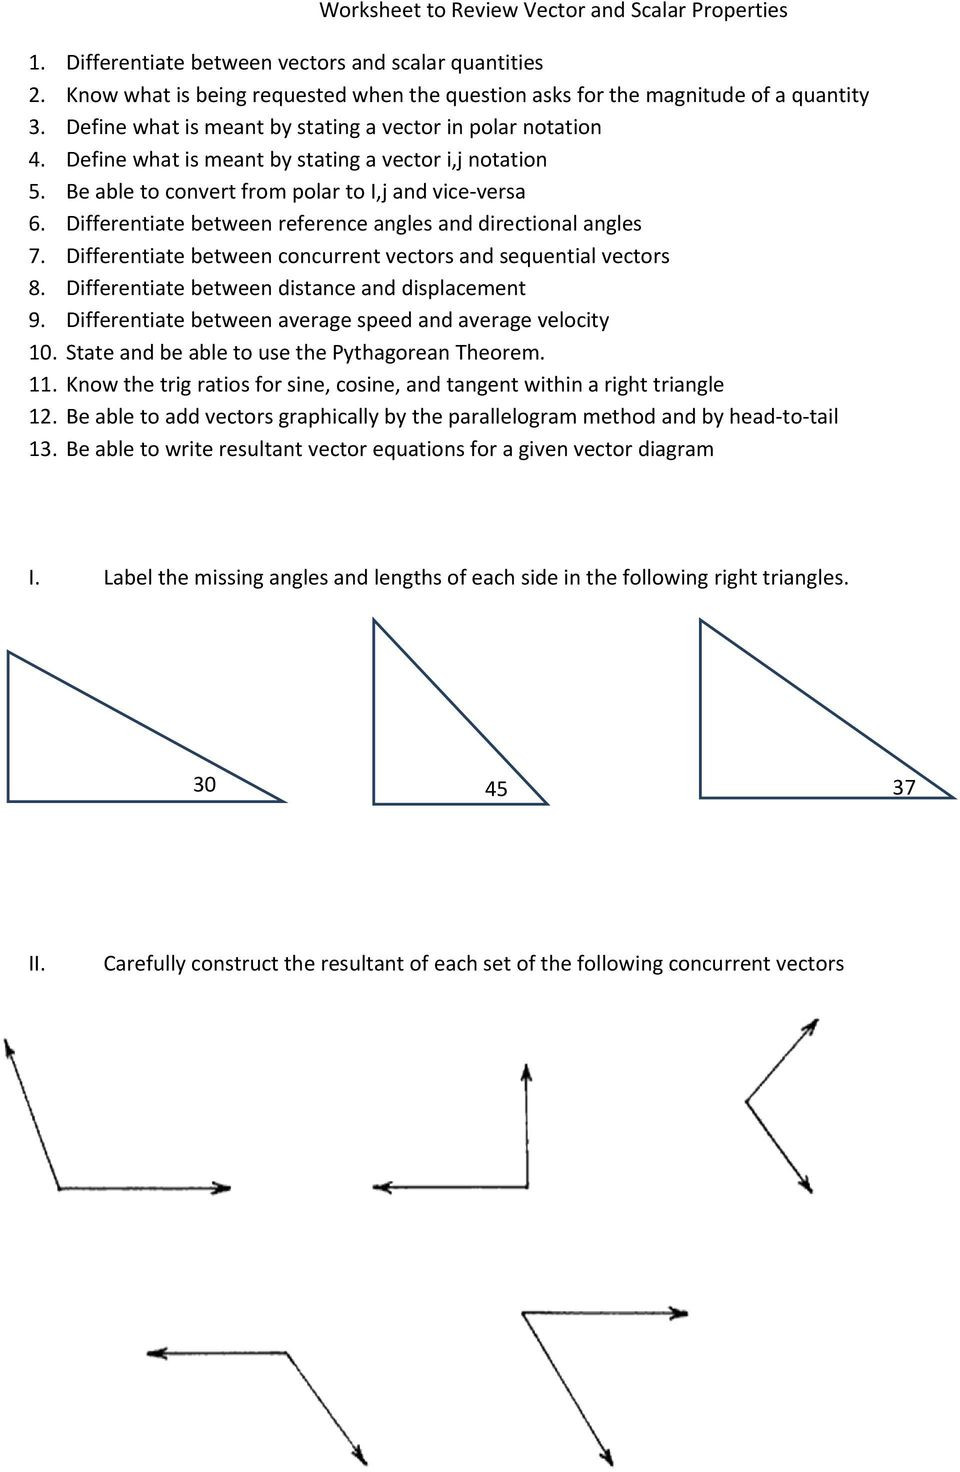 Vectors Worksheet with Answers Worksheet to Review Vector and Scalar Properties Pdf Free